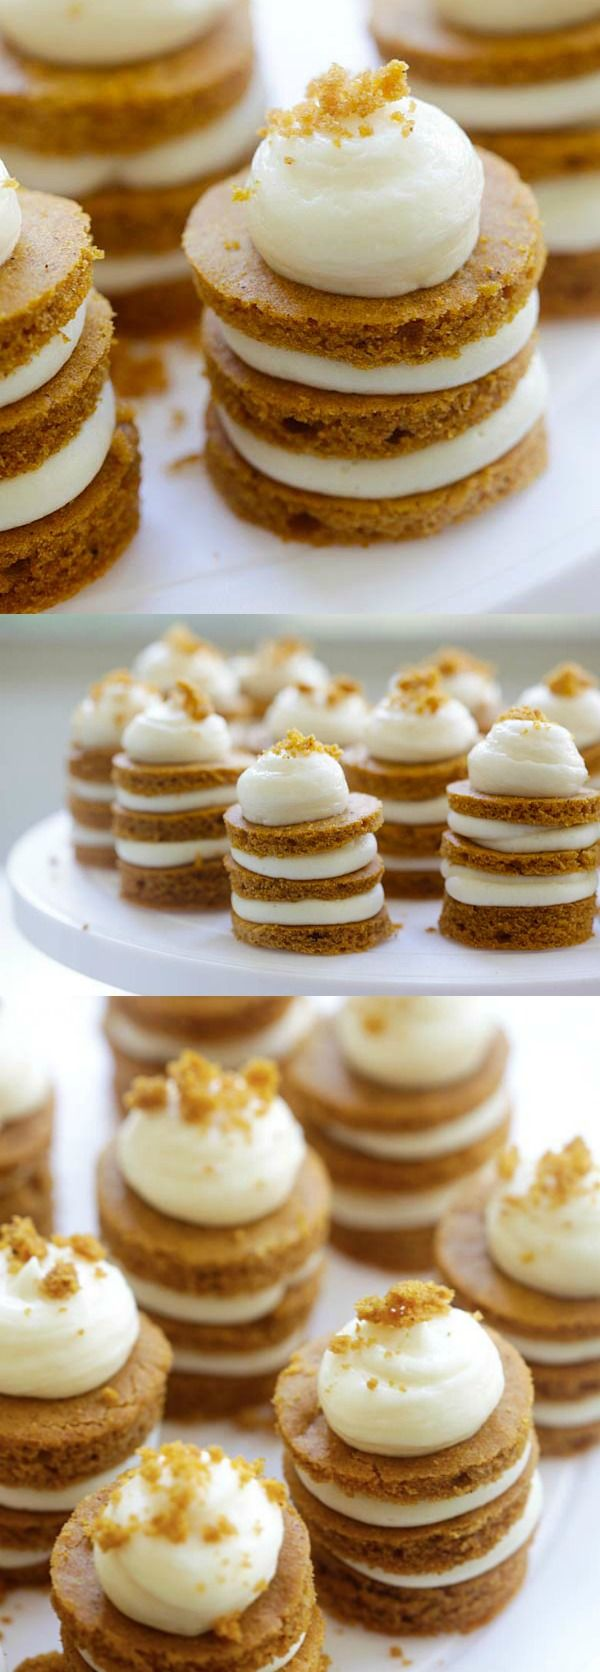 The cutest pumpkin cake recipe ever! Layers of pumpkin cake with cream cheese frosting, perfect dessert for holidays | rasamalaysia.com